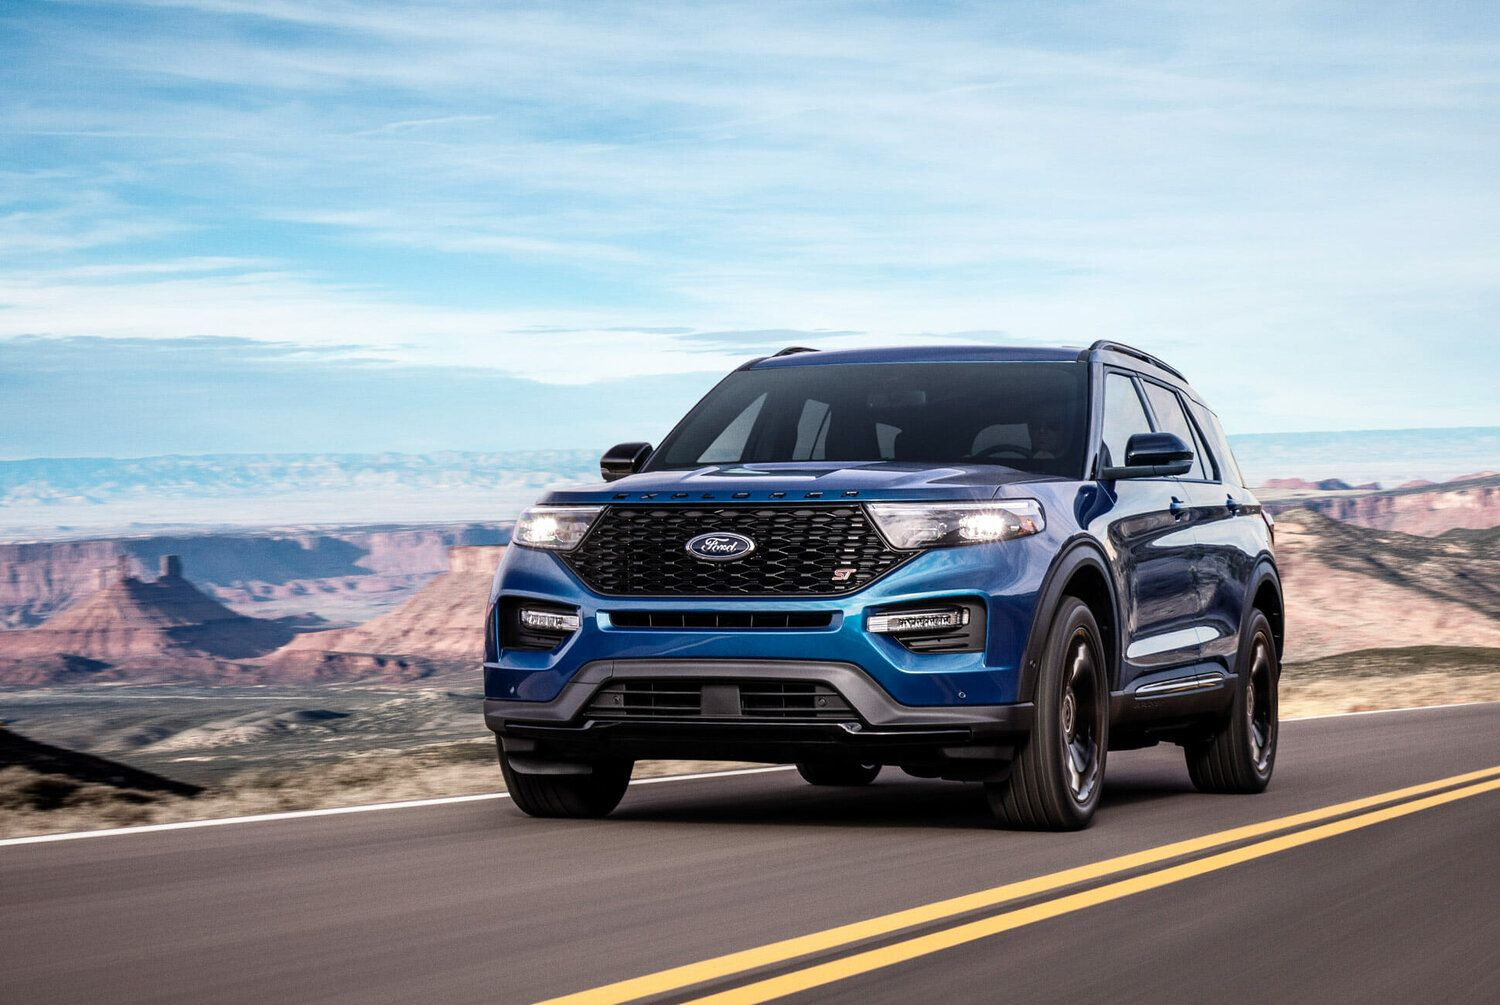 2020 Ford Explorer St Review Gear Patrol In 2020 Ford Explorer 2020 Ford Explorer Best New Cars